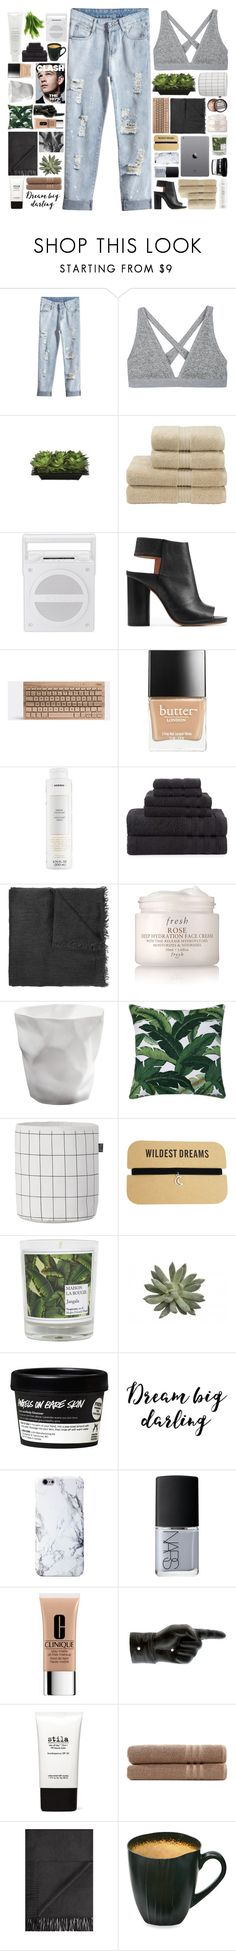 """""""Talking 'bout it's not my style"""" by justonegirlwithdreams ❤ liked on Polyvore featuring T By Alexander Wang, Lux-Art Silks, Christy, Maison Margiela, Butter London, Korres, Martex, Faliero Sarti, Fresh and ferm LIVING"""